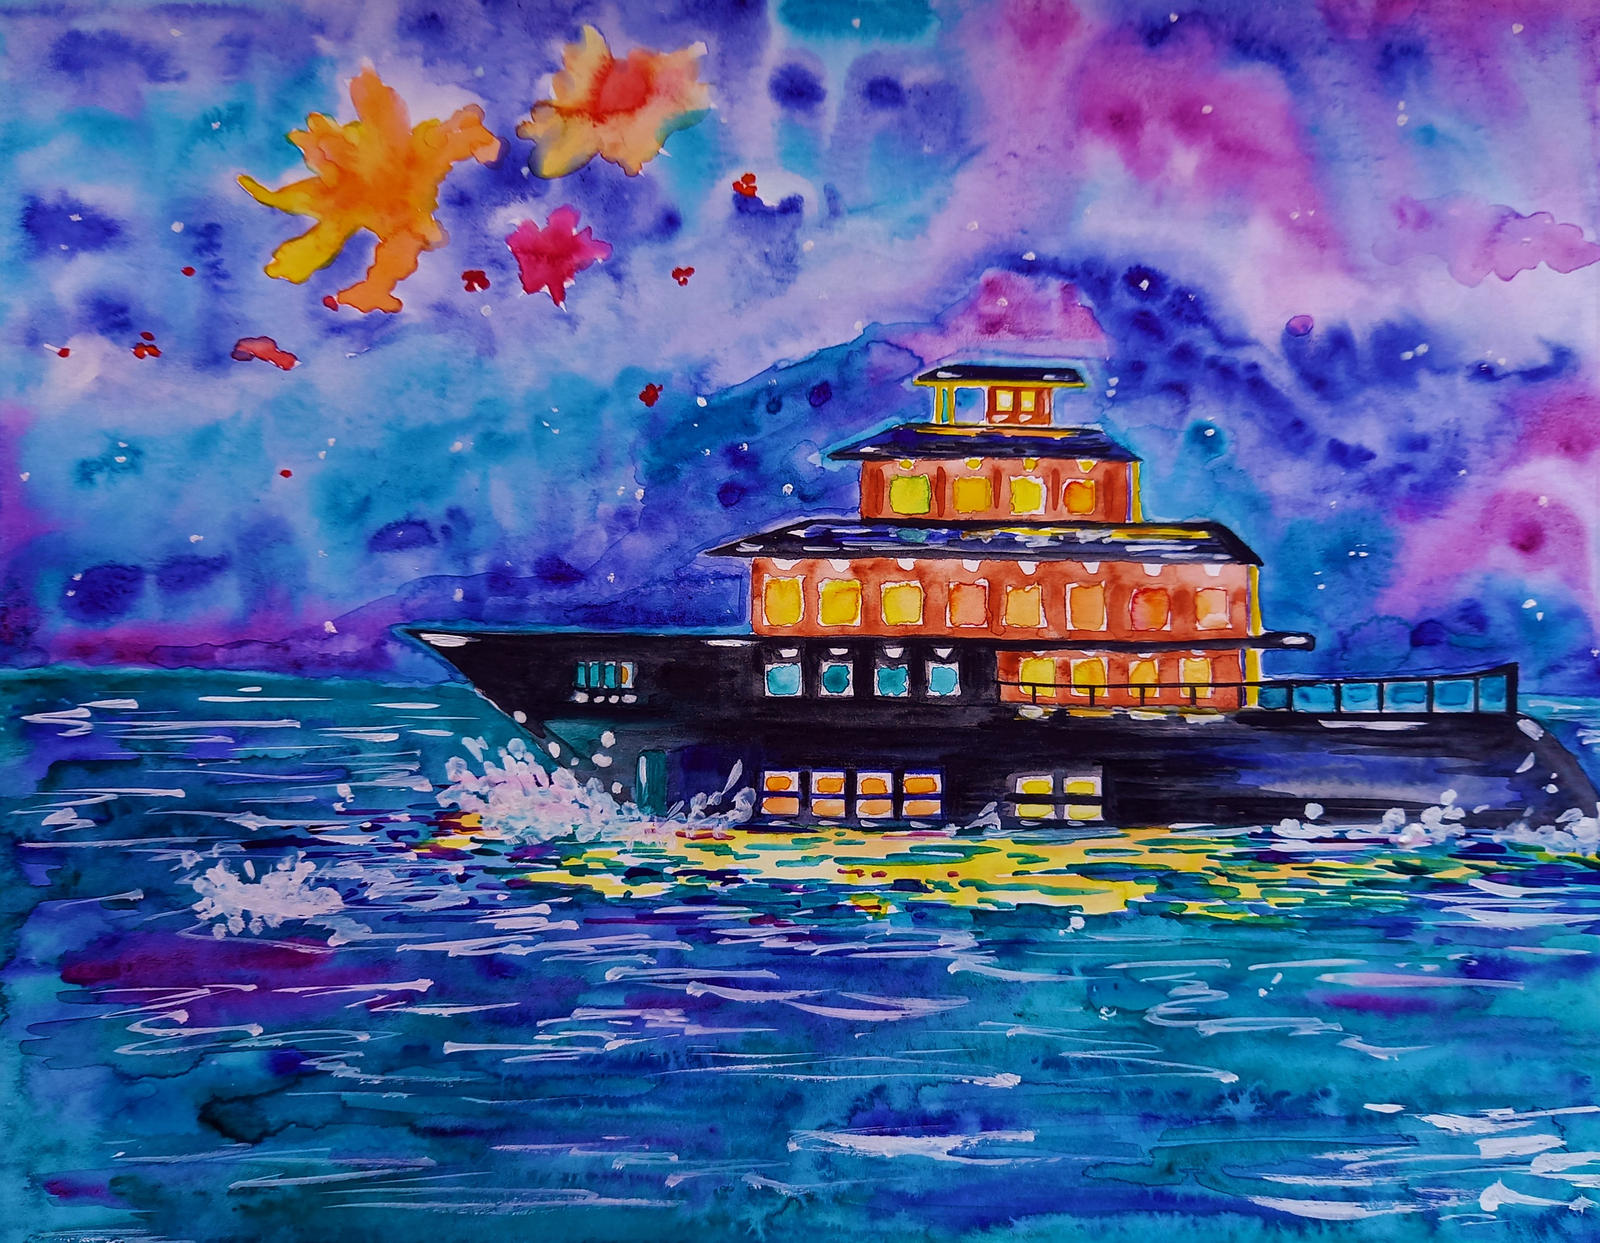 Ship from my Dream